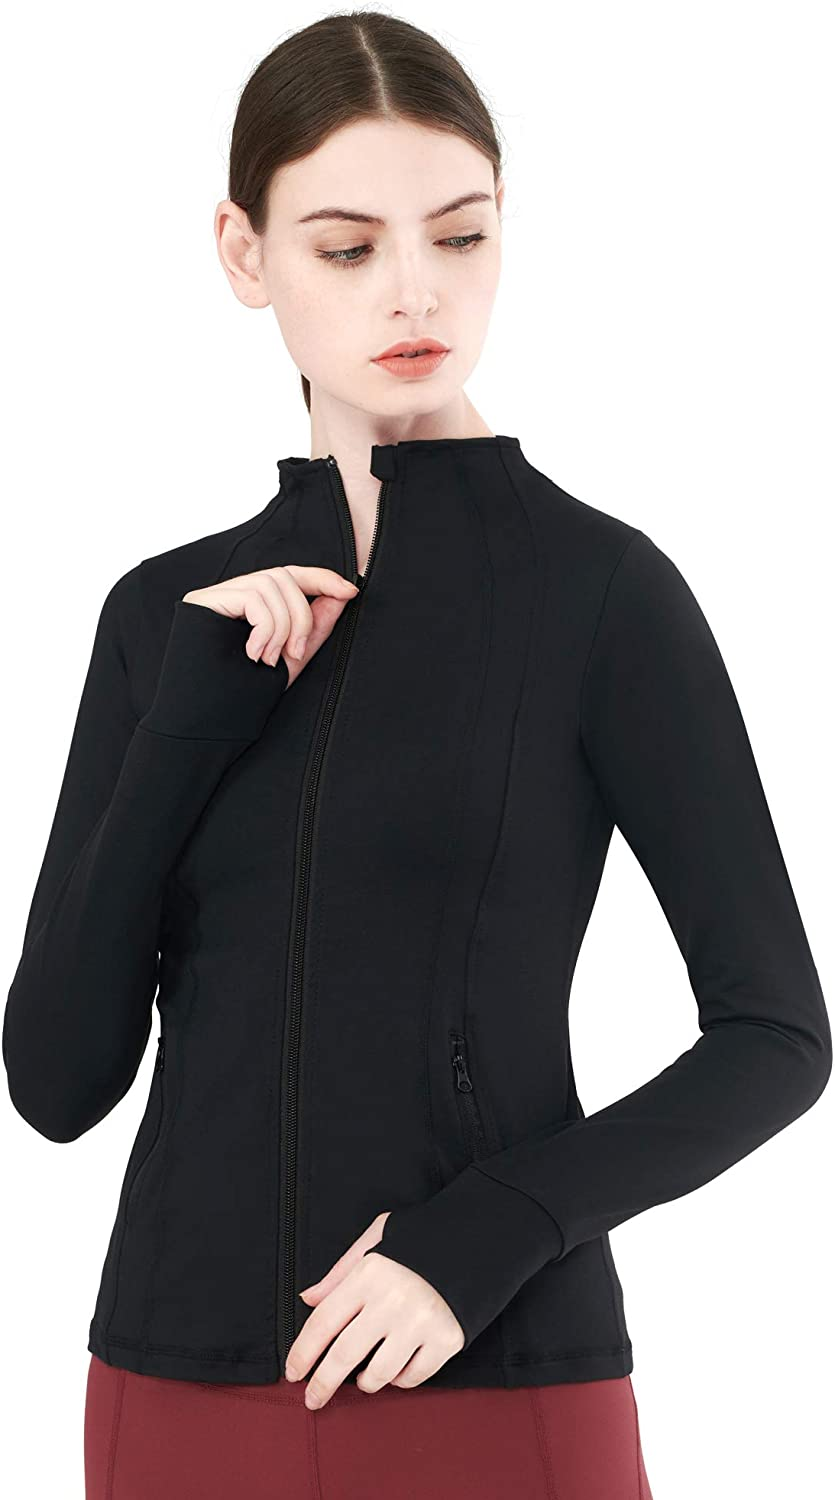 Zeronic Women's Collar Pockets Casual Zip Jacket with Thumb Holes at  Women's Clothing store